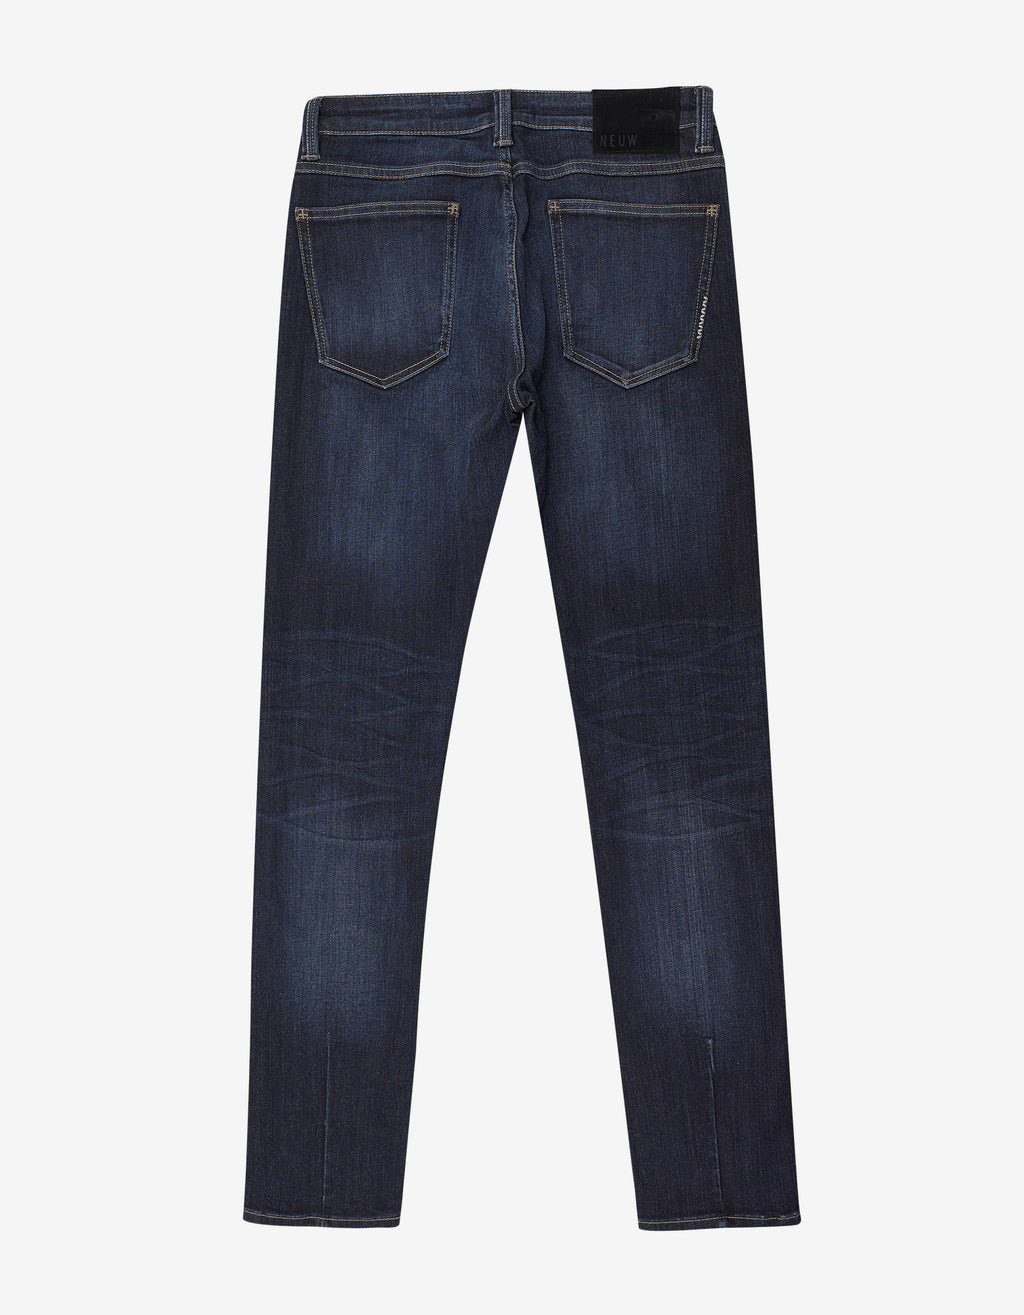 Iggy Skinny Factory Air Wash Jeans